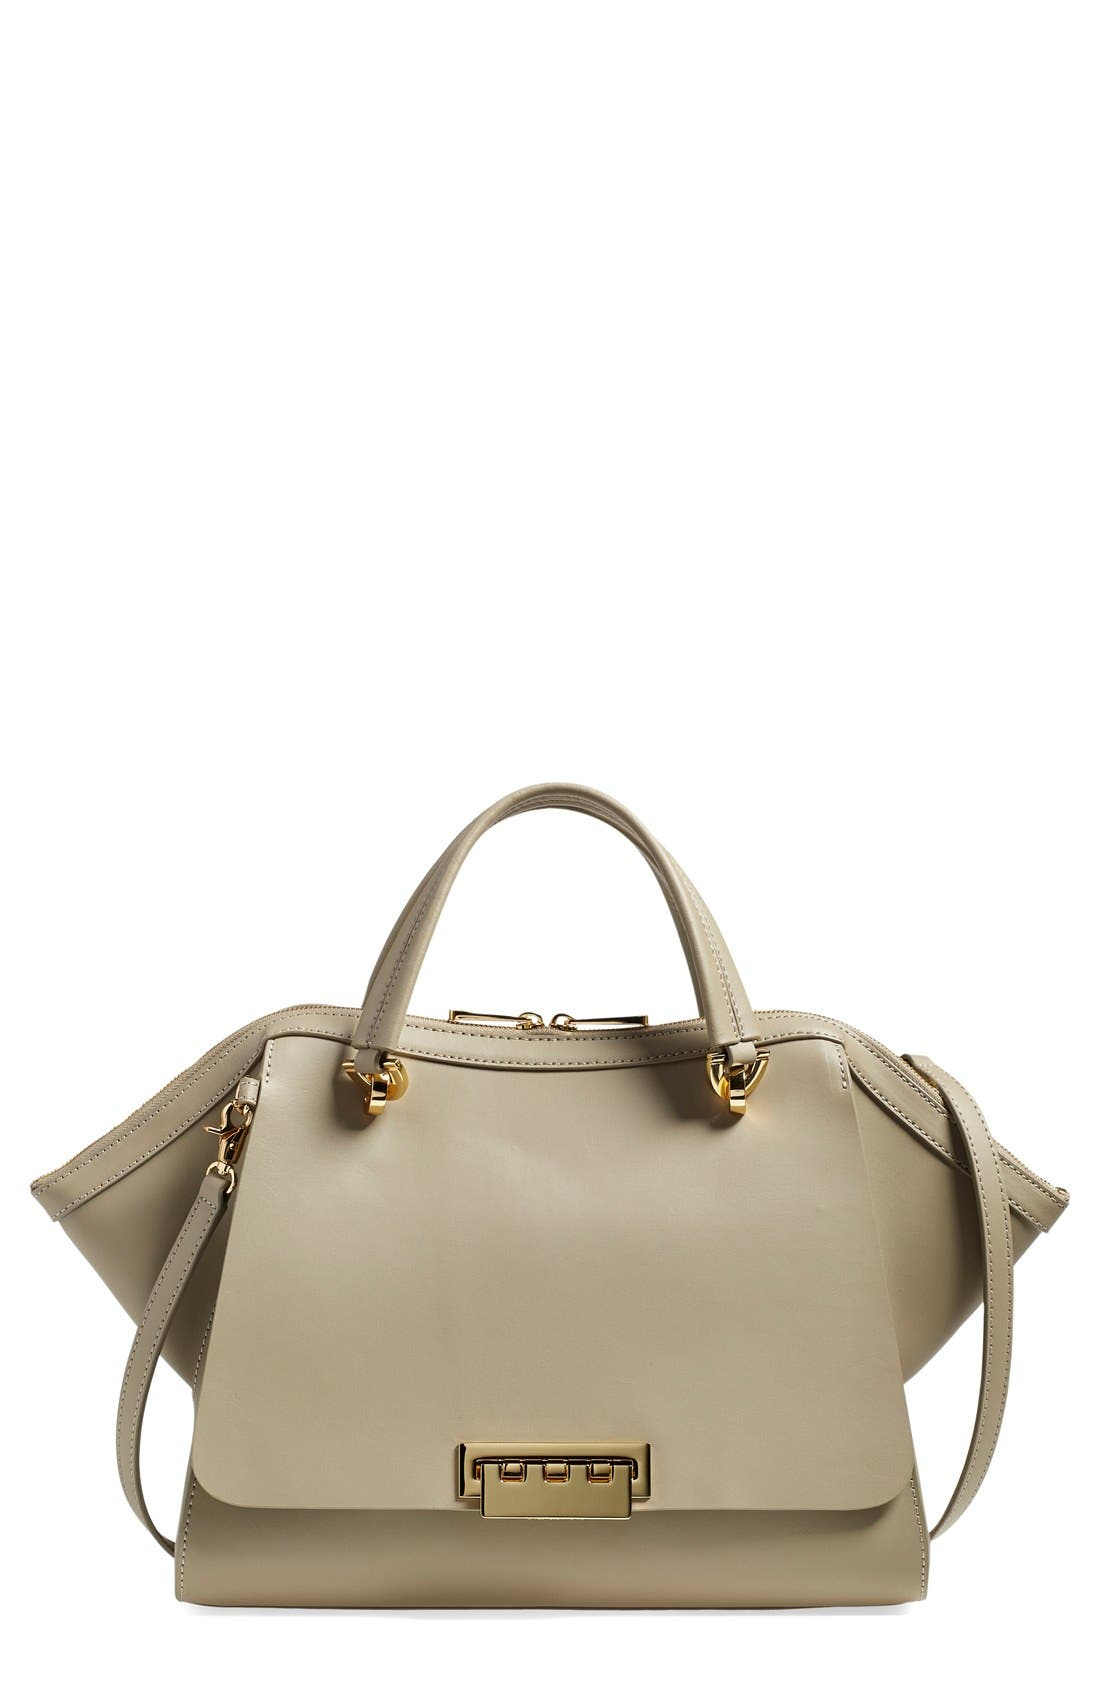 ZAC ZAC POSEN Eartha Jumbo Double Handle Satchel